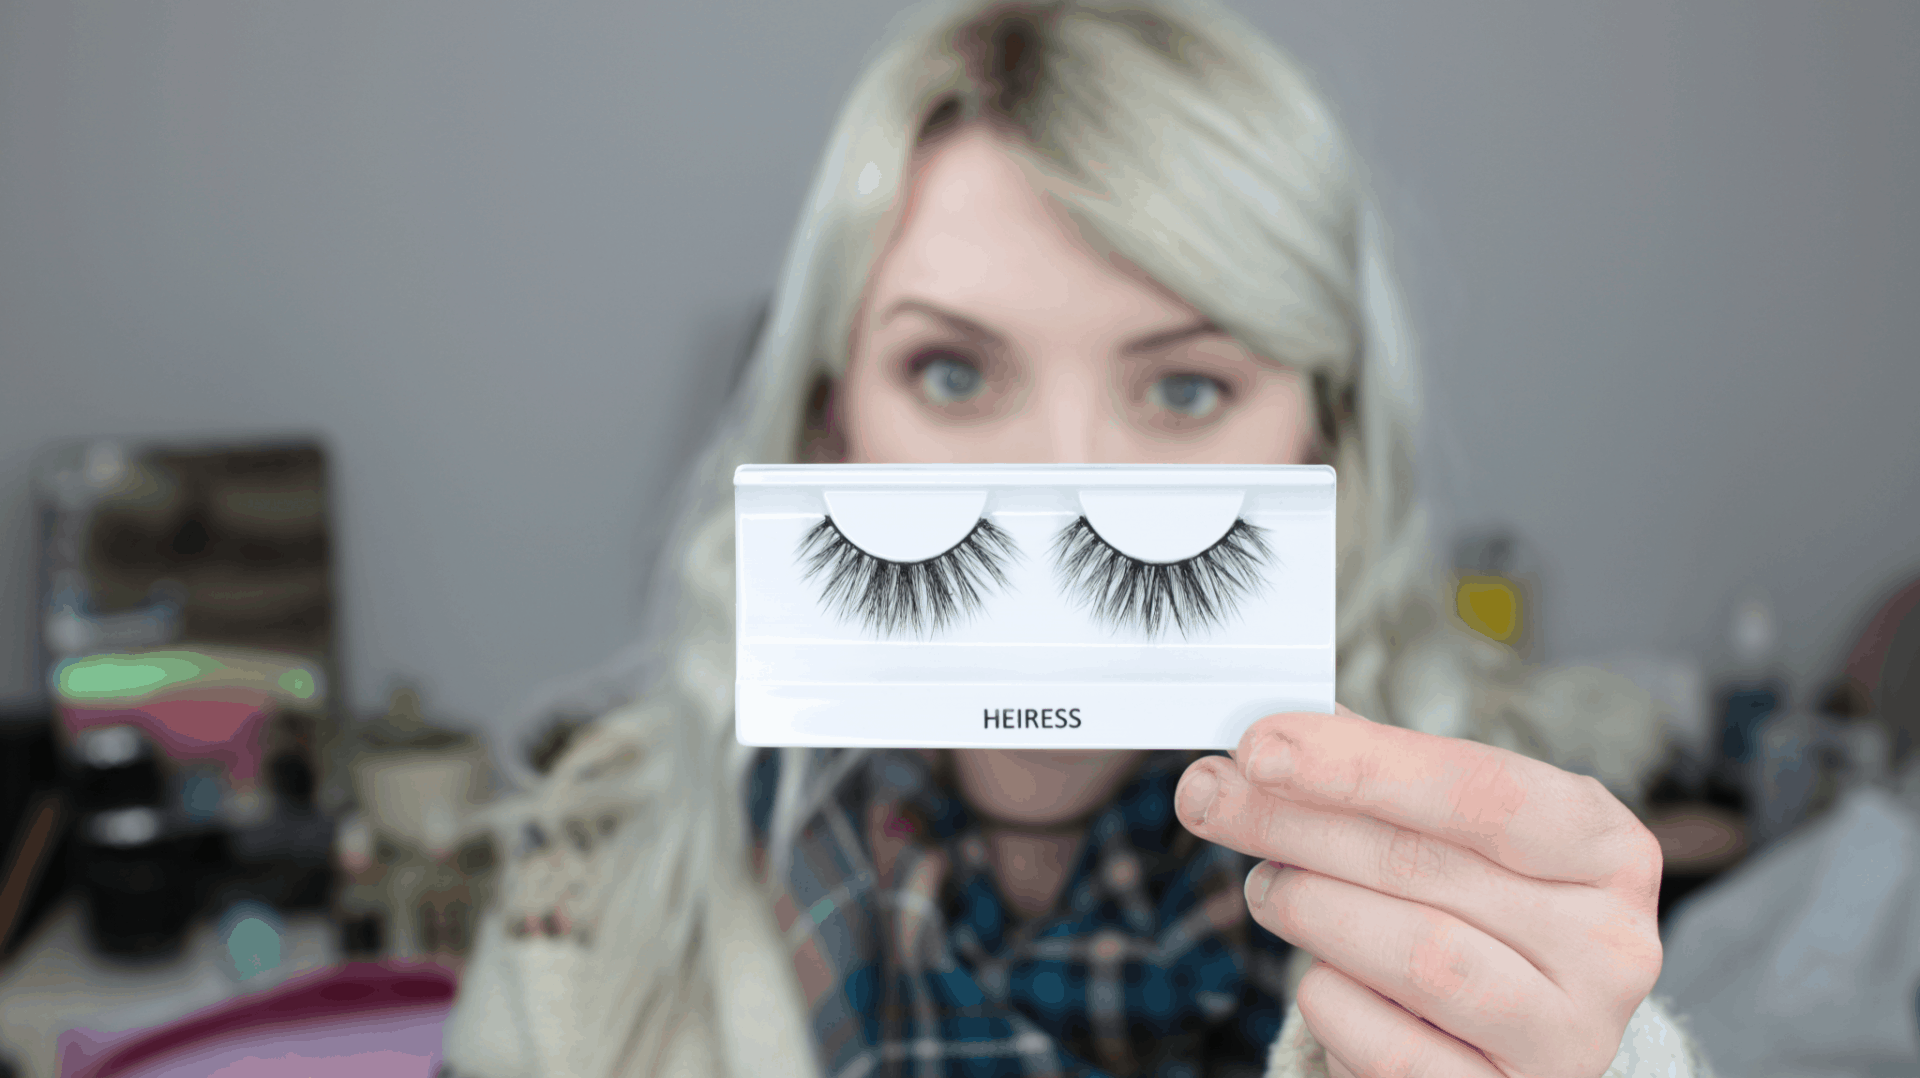 Heiress False Lashes